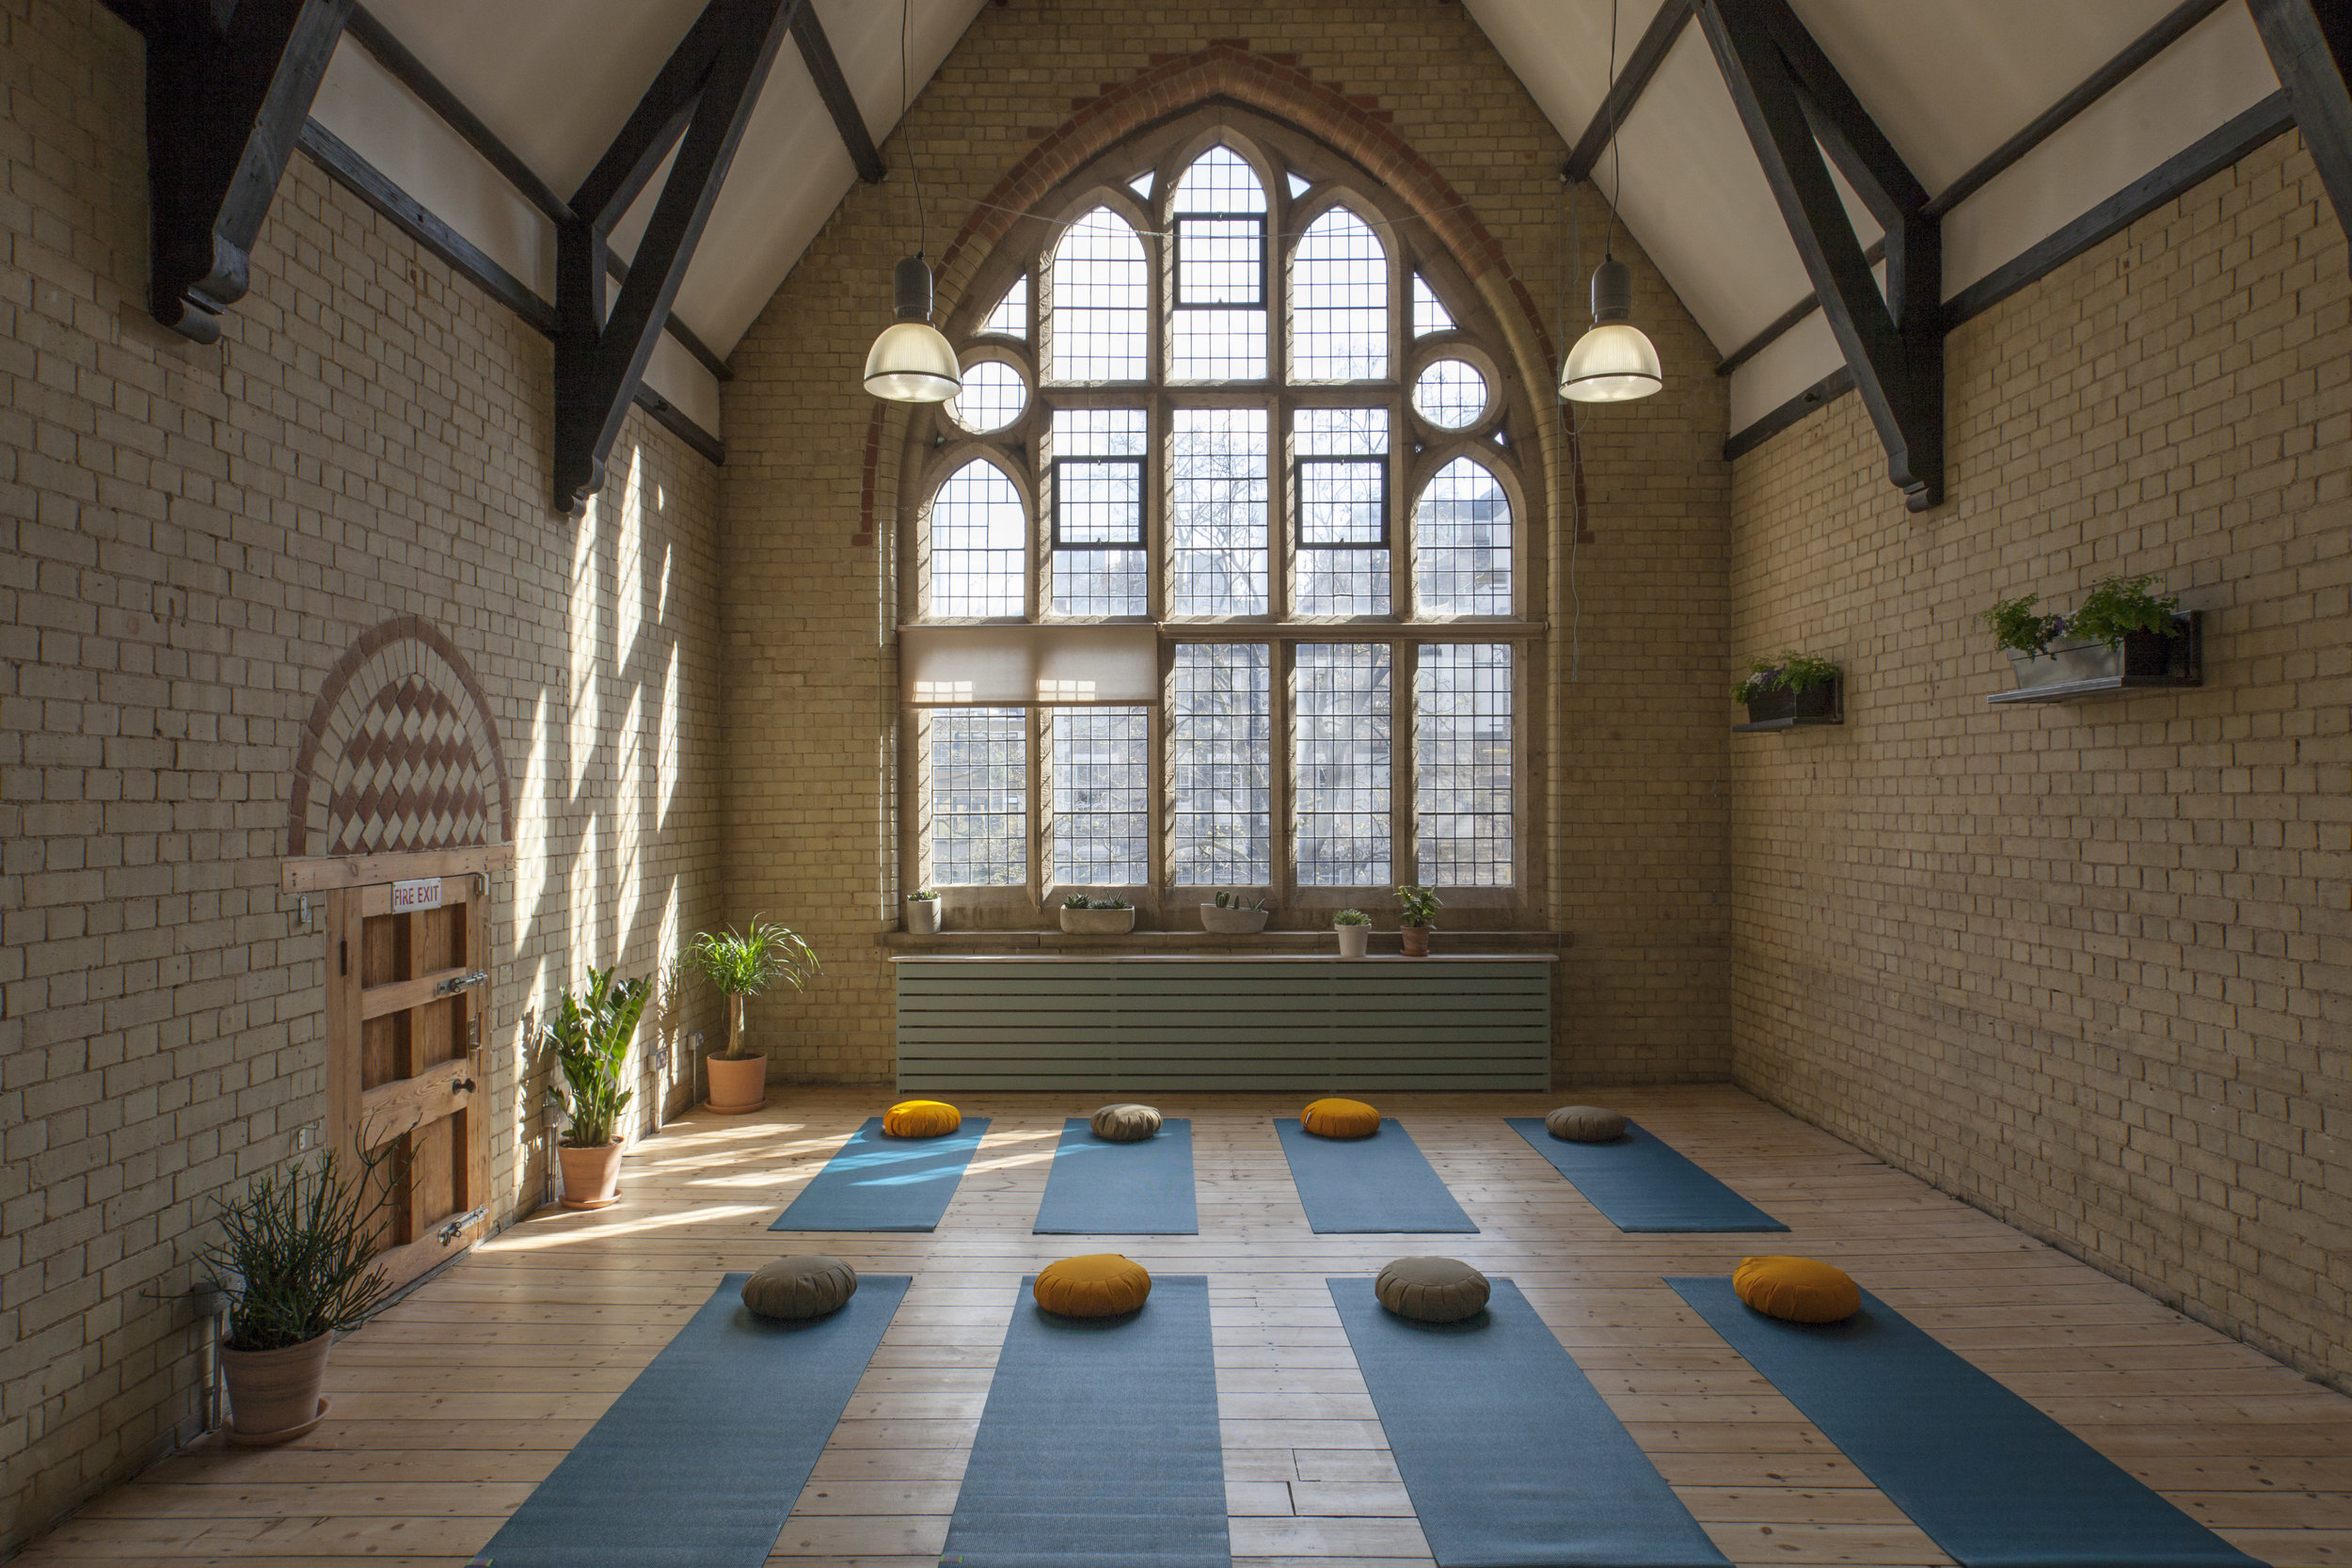 42 Acres Shoreditch: Home to January's Instant Pause event (and probably a quieter and calmer new you)